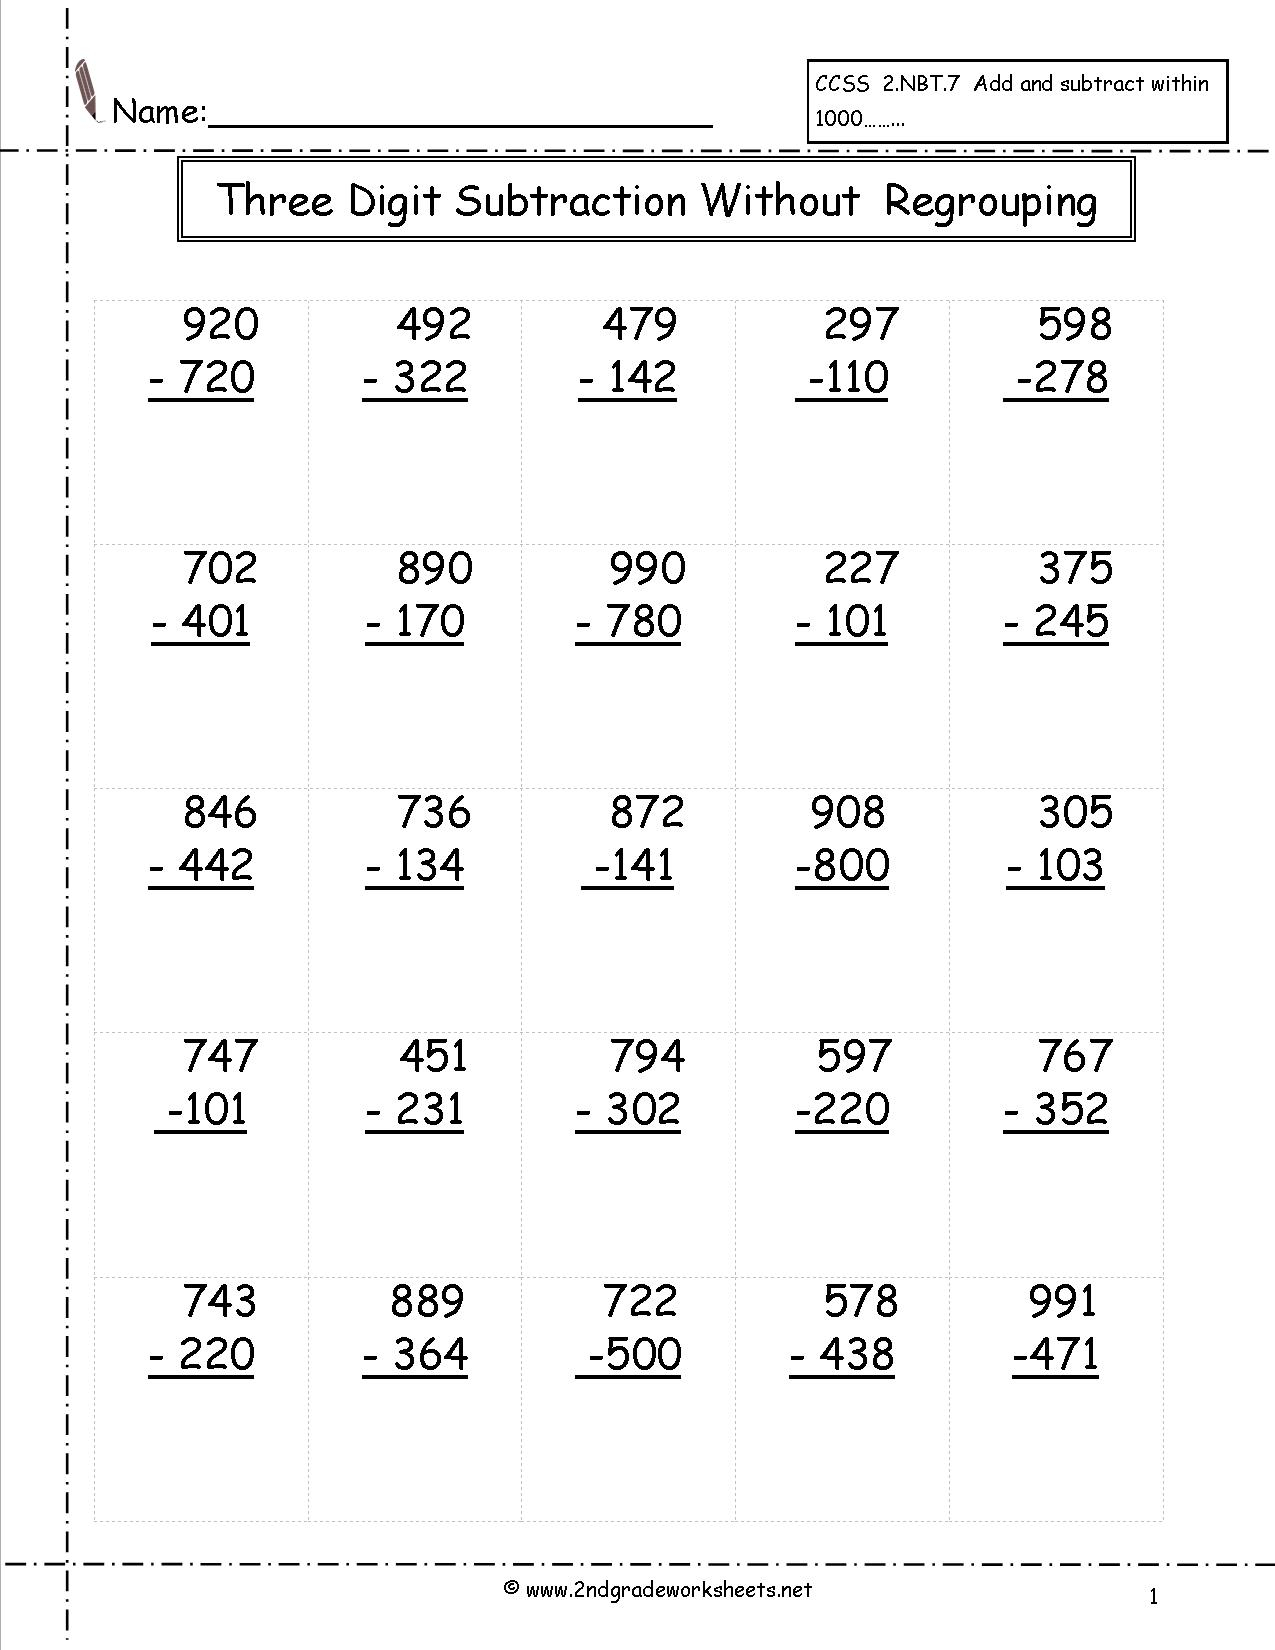 Subtraction Worksheets With Regrouping 2 Digits